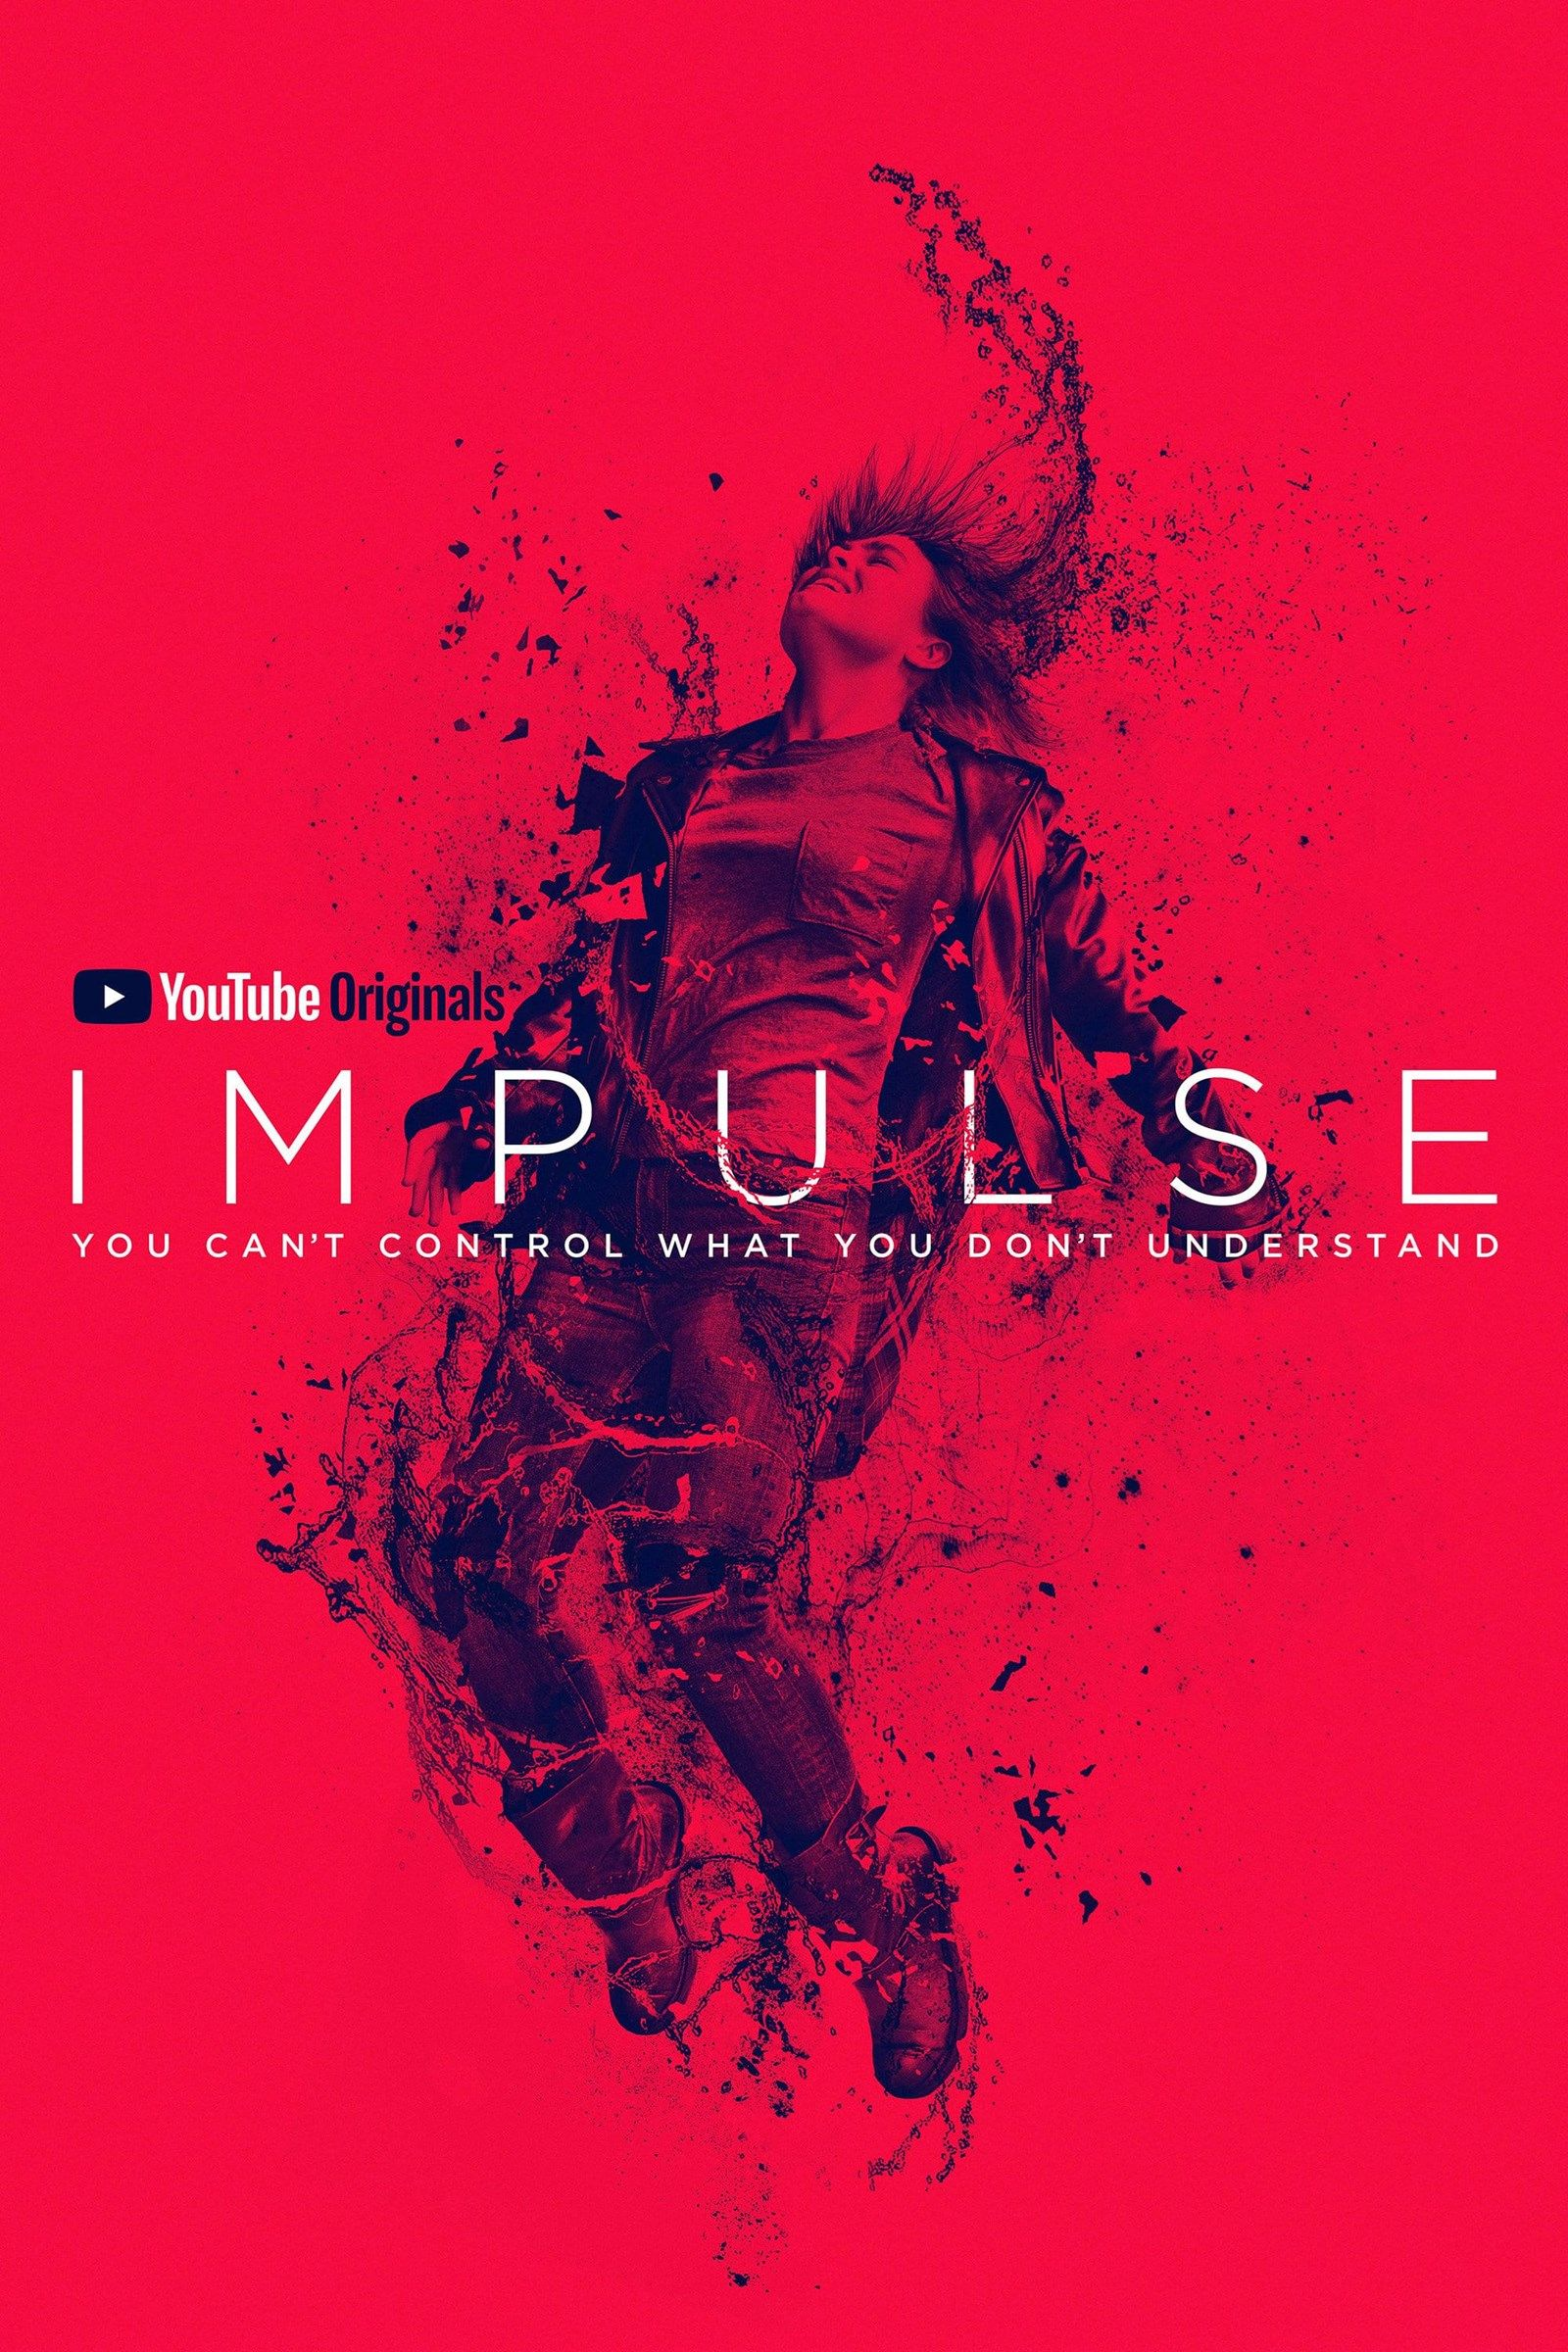 Impulse | TV Series | Movies, tv shows, All episodes, Series